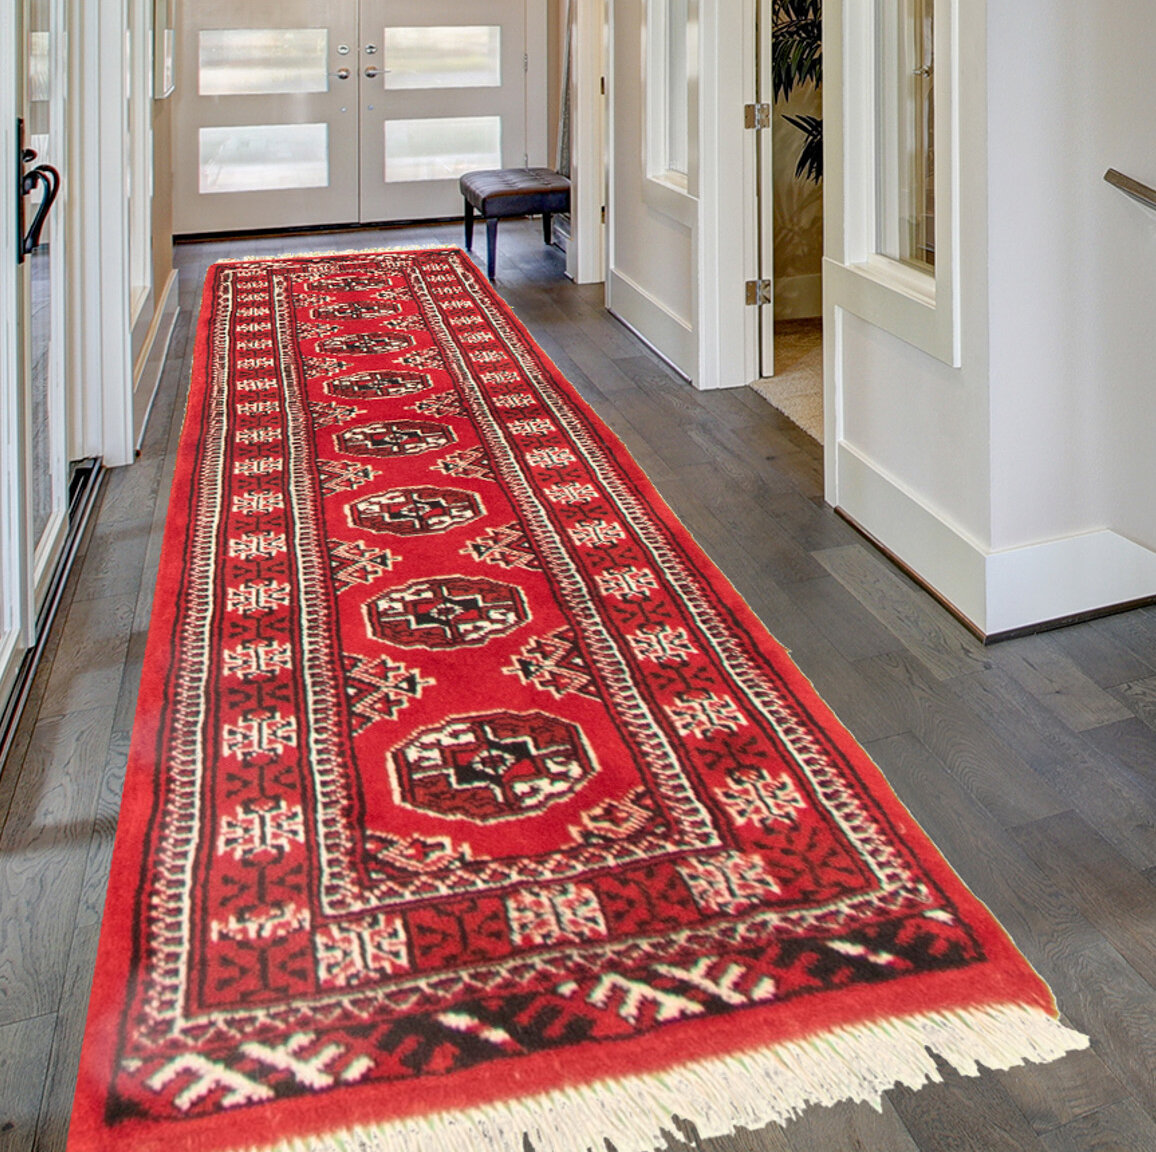 Knotted Bloomsbury Market Area Rugs You Ll Love In 2021 Wayfair